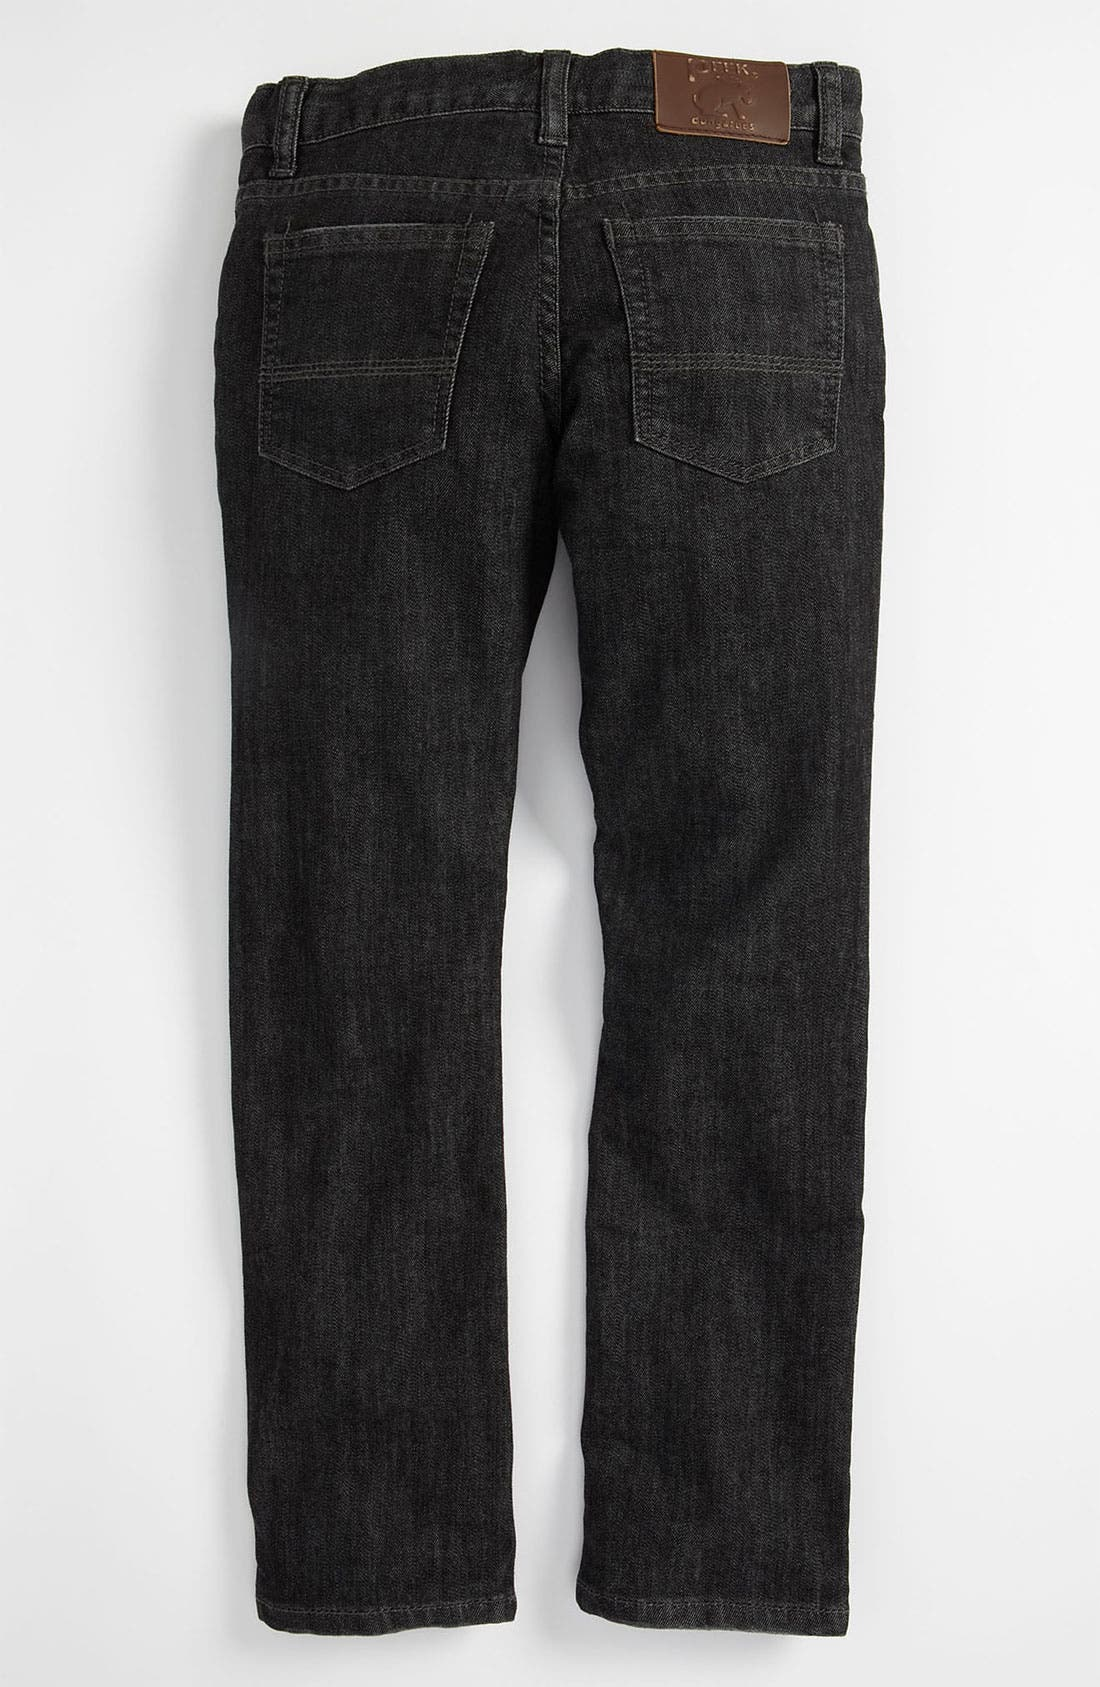 Alternate Image 1 Selected - Peek 'Slouch' Jeans (Toddler, Little Boys & Big Boys)